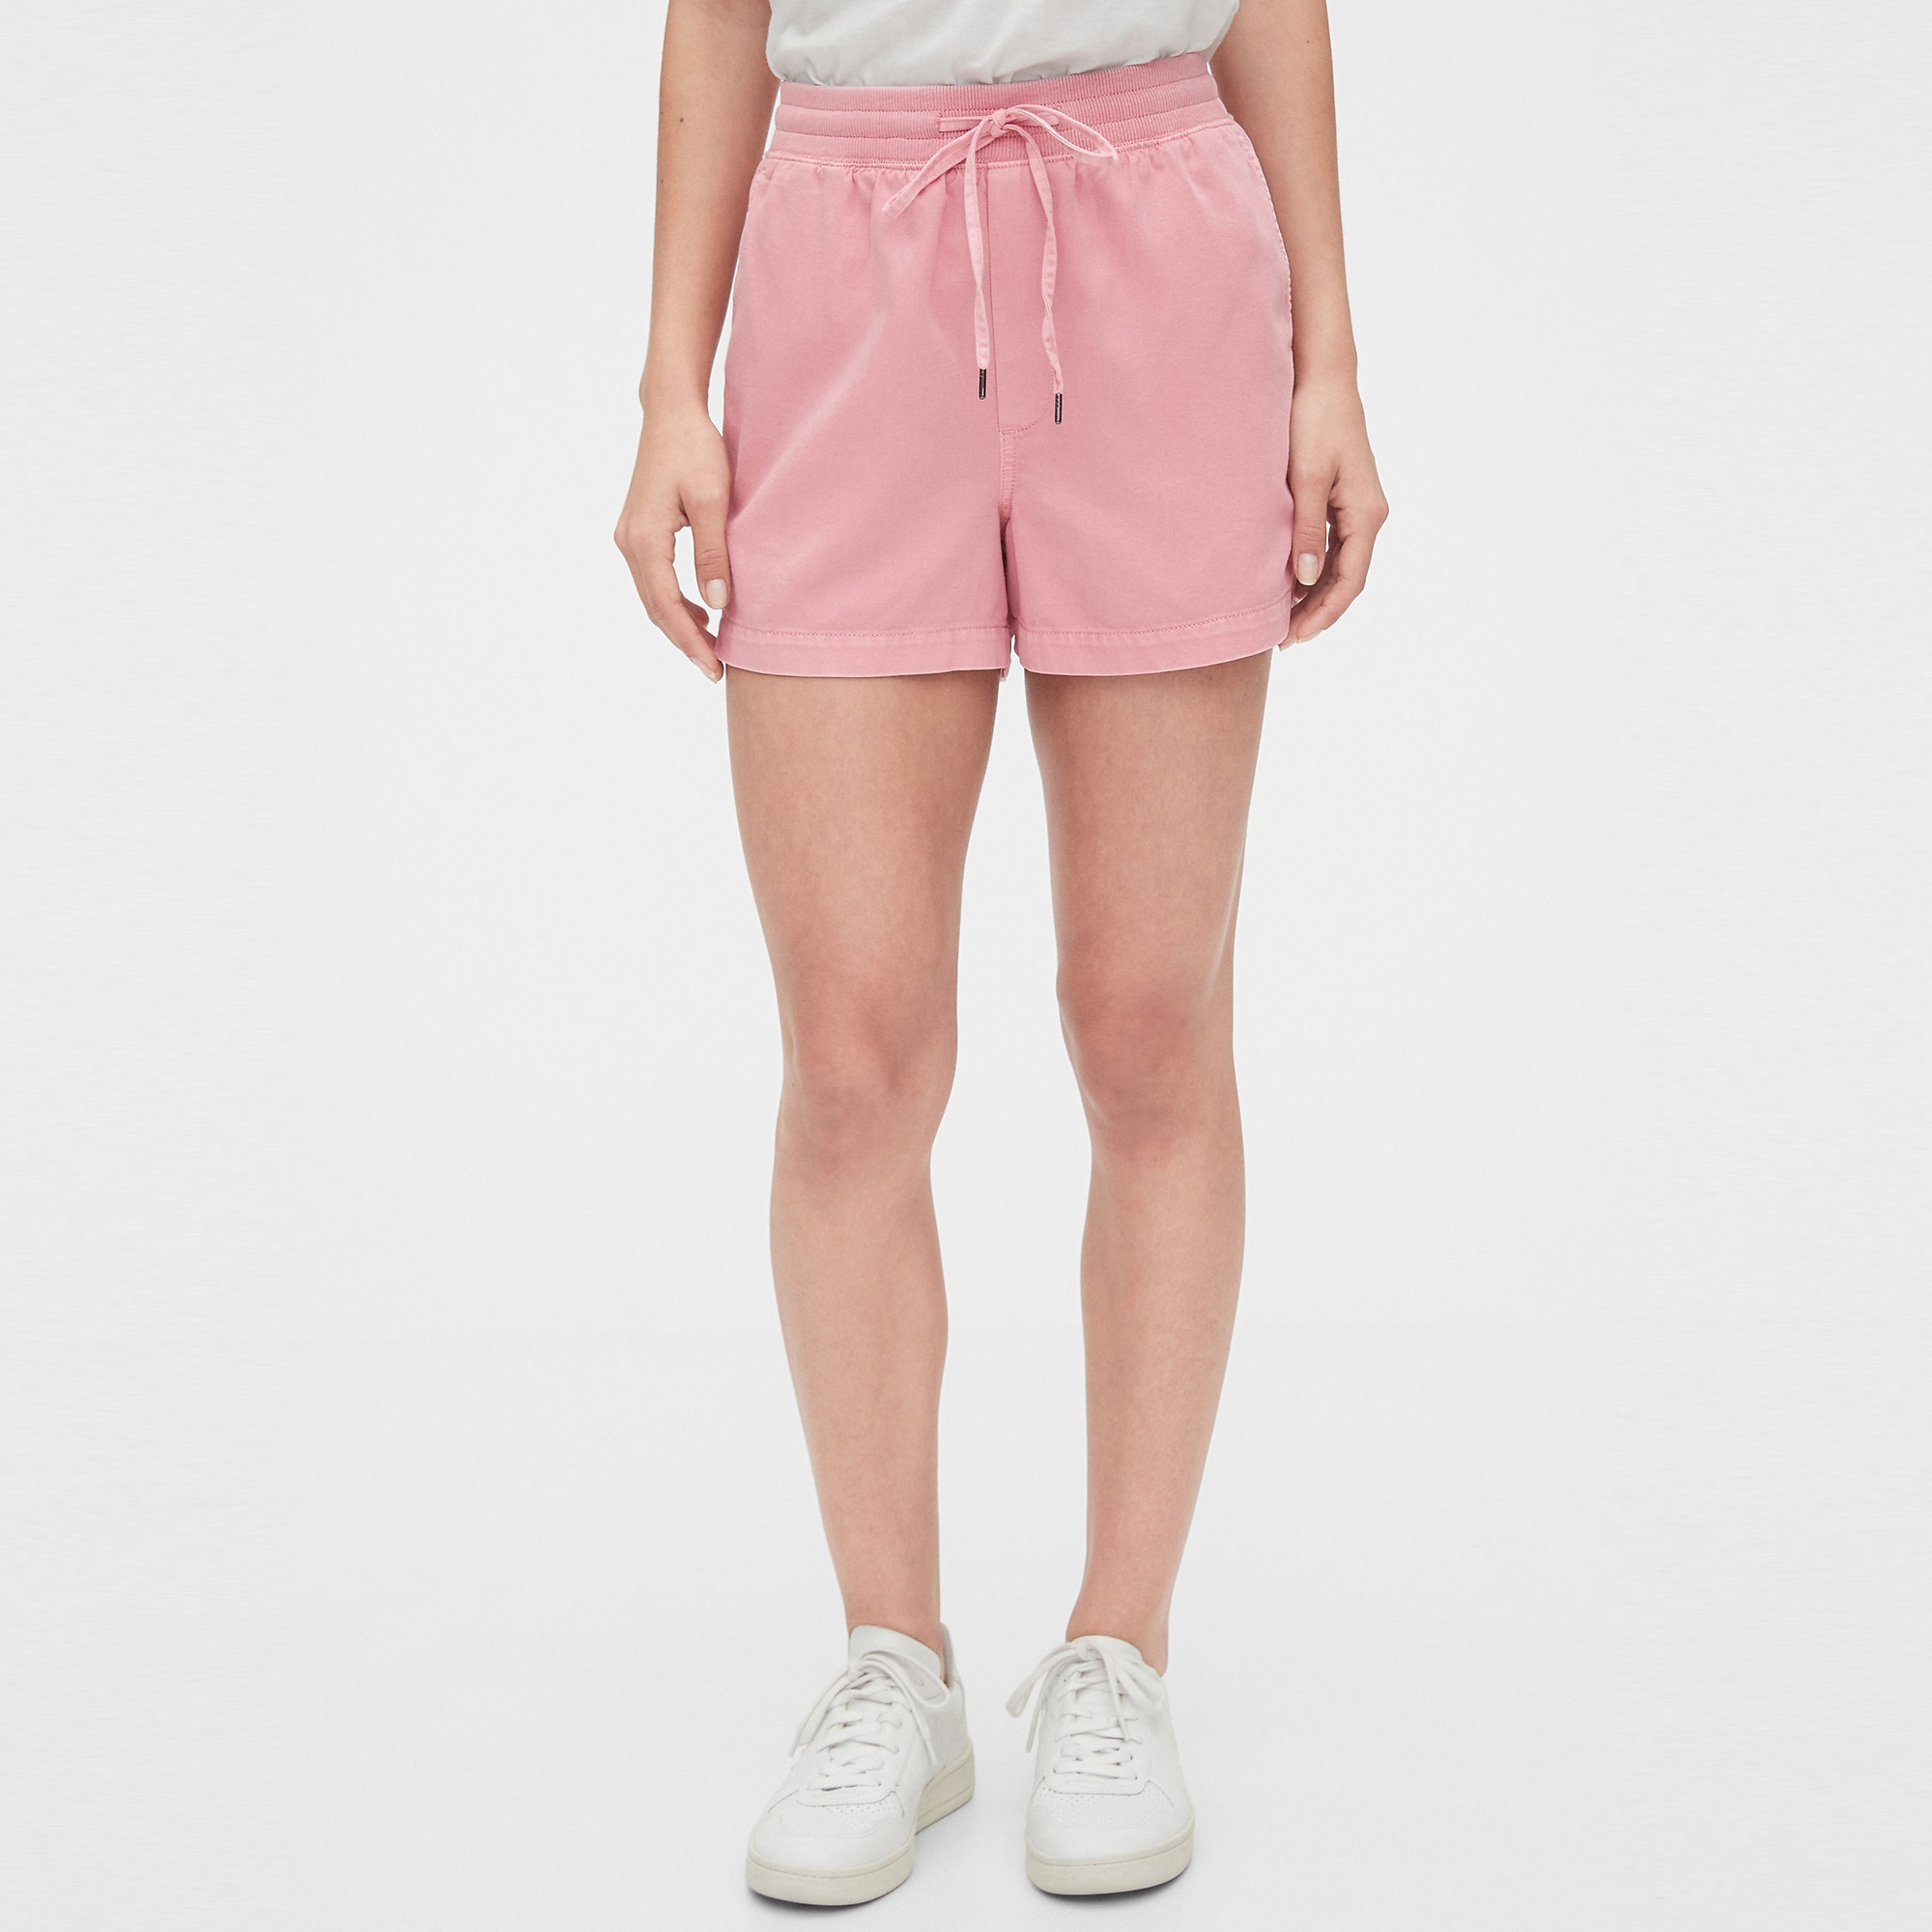 GAP Textil Shorts Pull On Shorts - Freesia Pink 543310-785